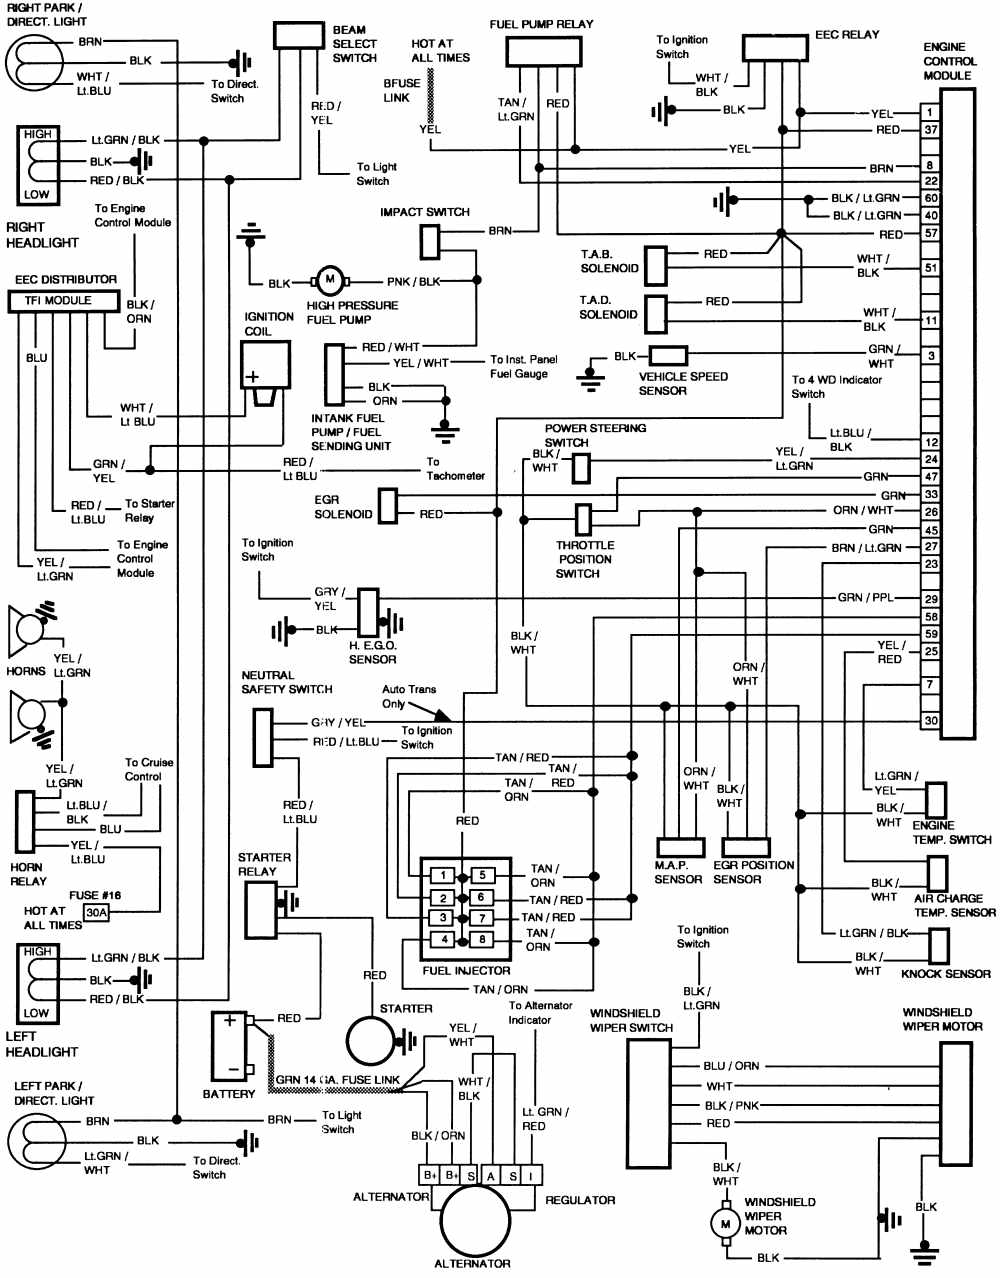 ford f250 1986 engine control module wiring diagram all about engine control module wiring diagram